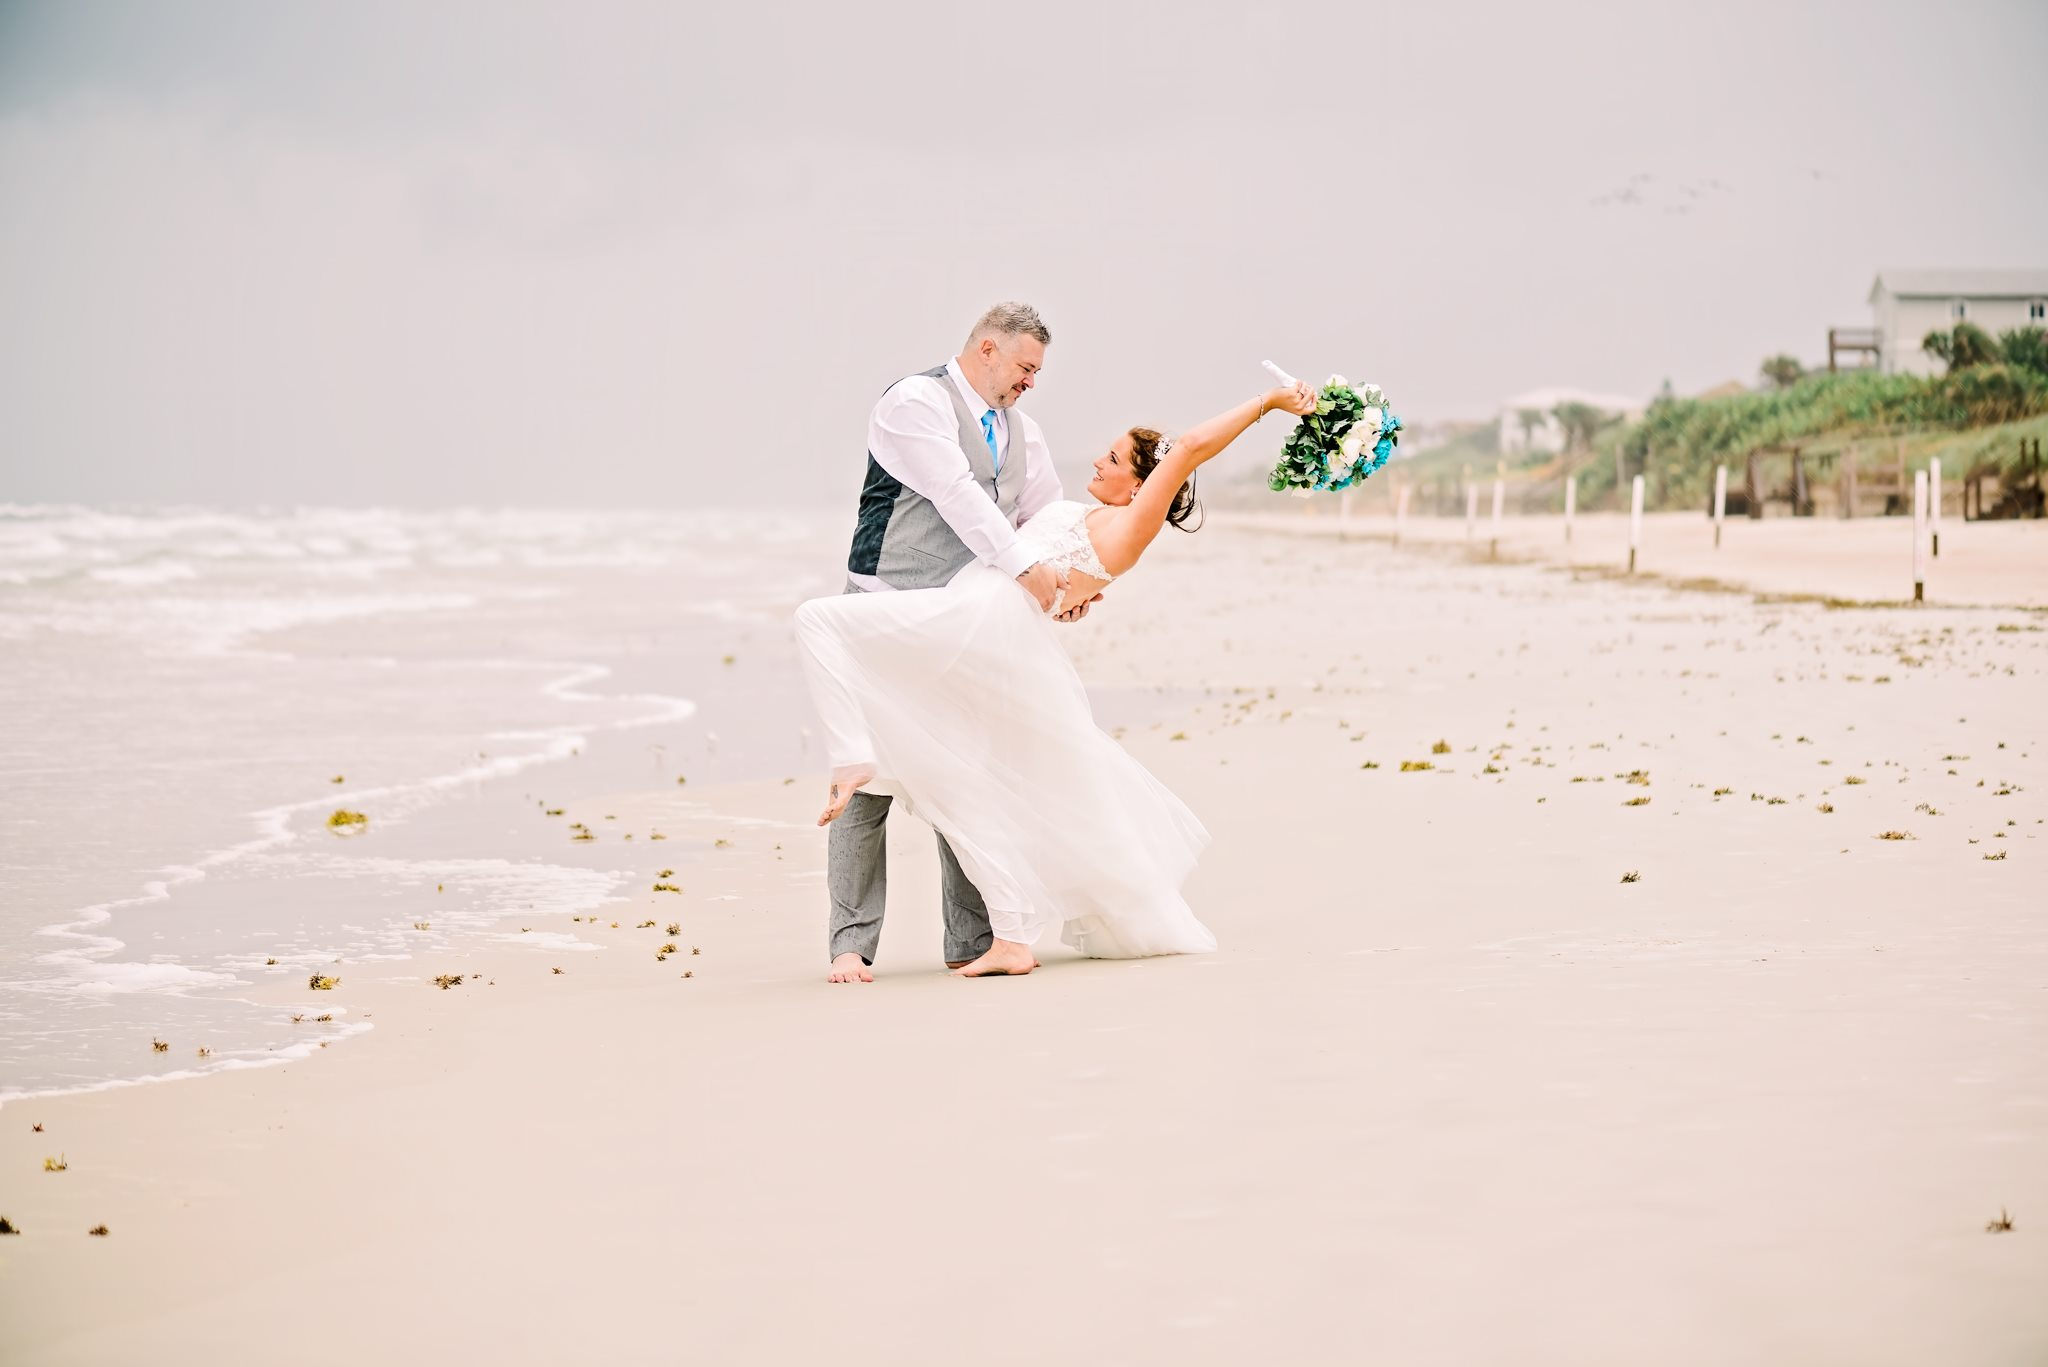 The Ultimate Guide For A Magical Elopement In Florida